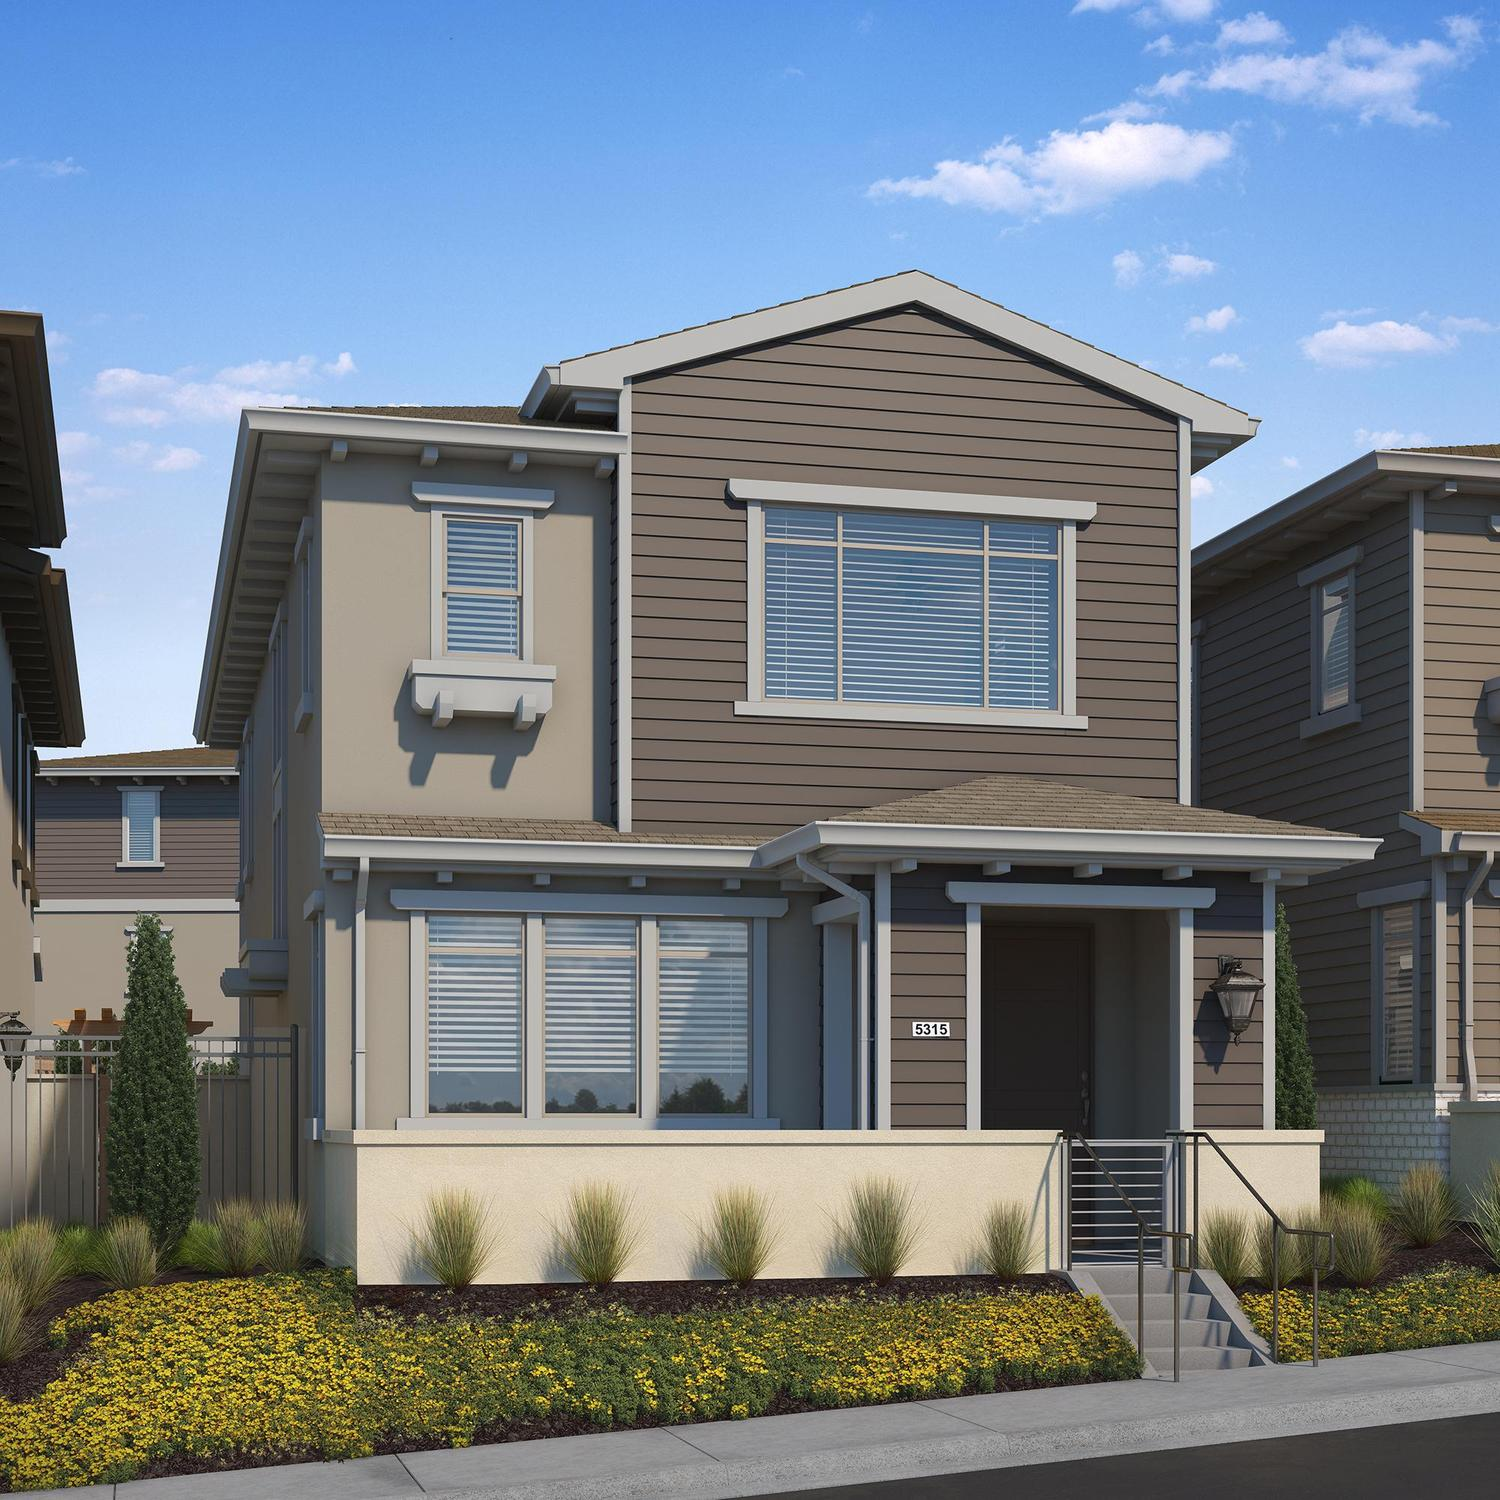 Single Family for Active at Hadley Trails - Plan 1 5303 Davidson Drive Whittier, California 90601 United States